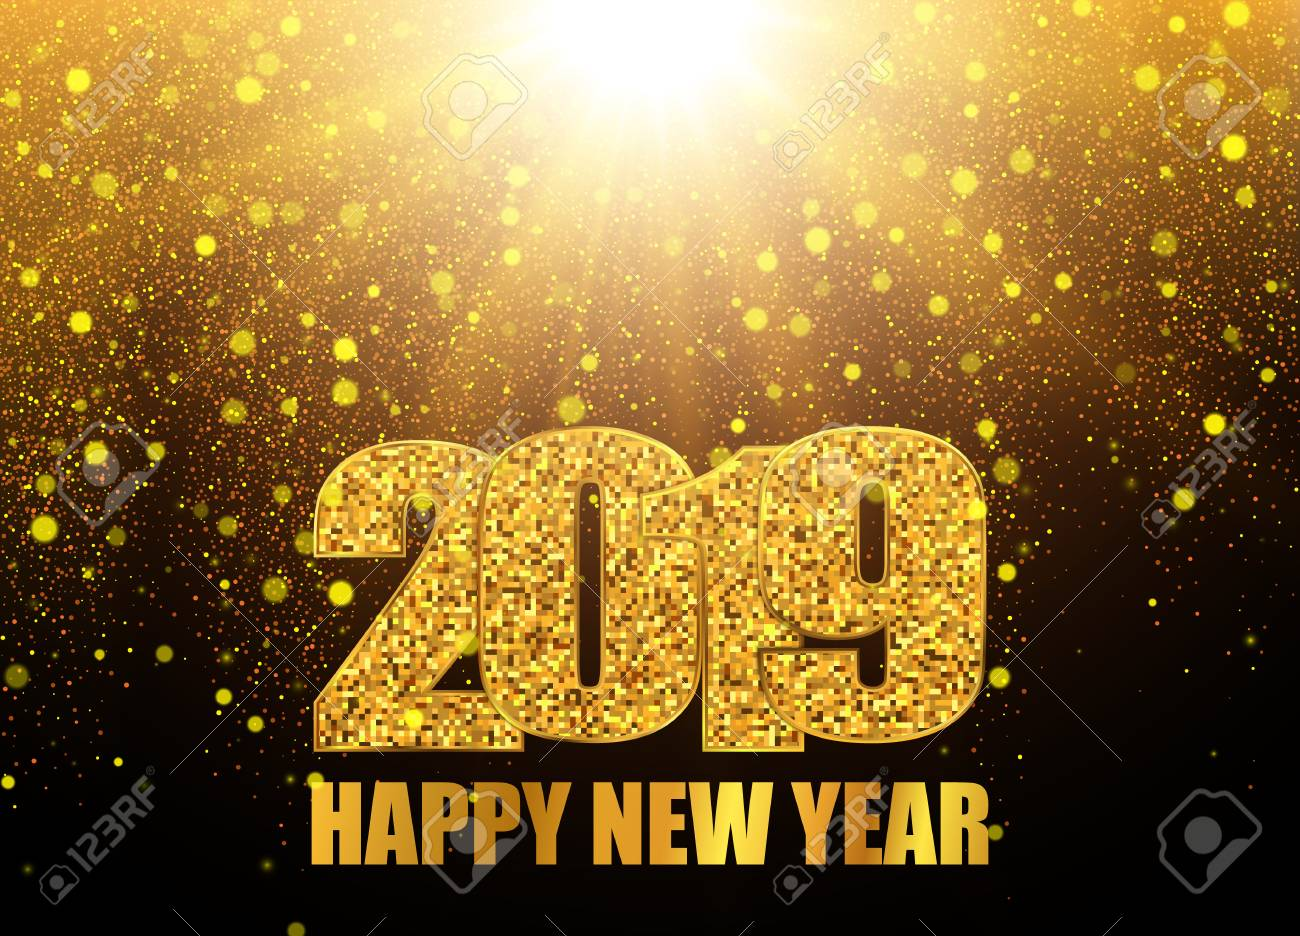 2019 happy new year background abstract illustration stock vector 112131437